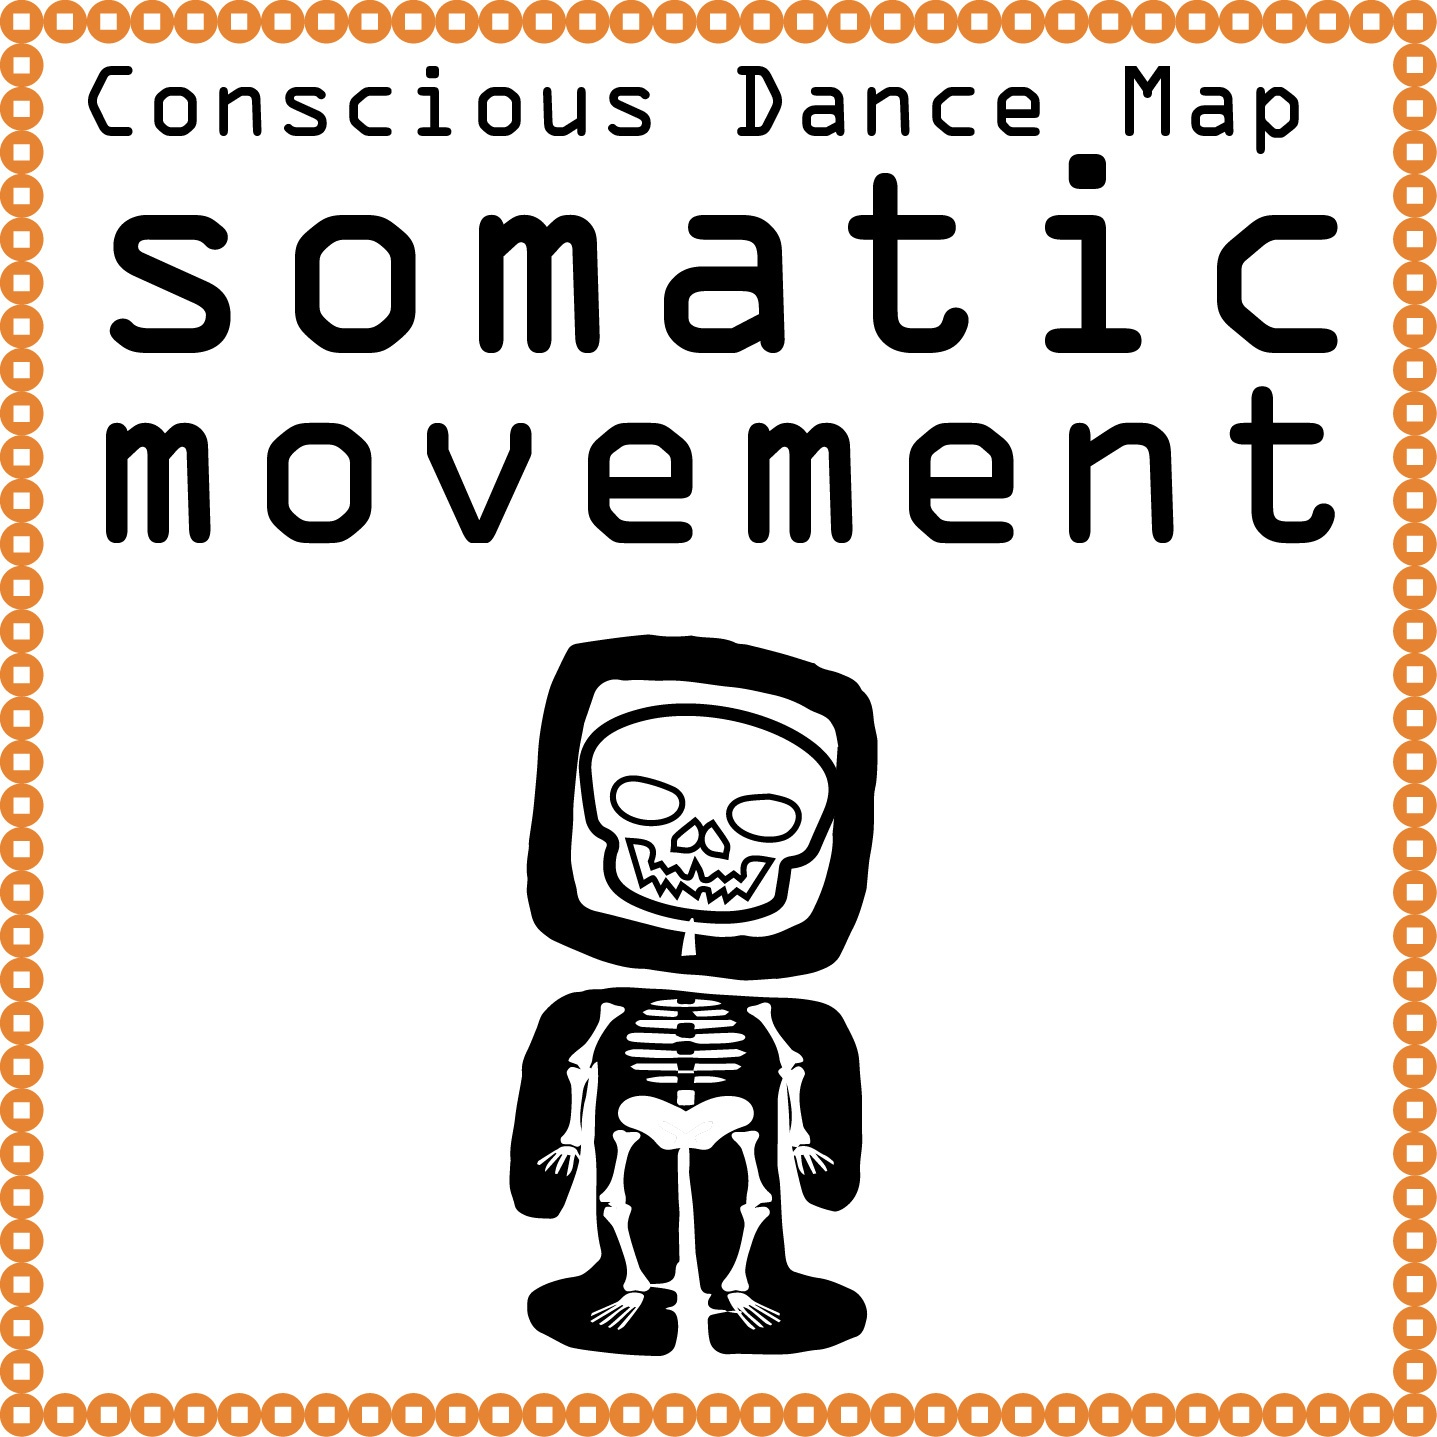 somatic movement